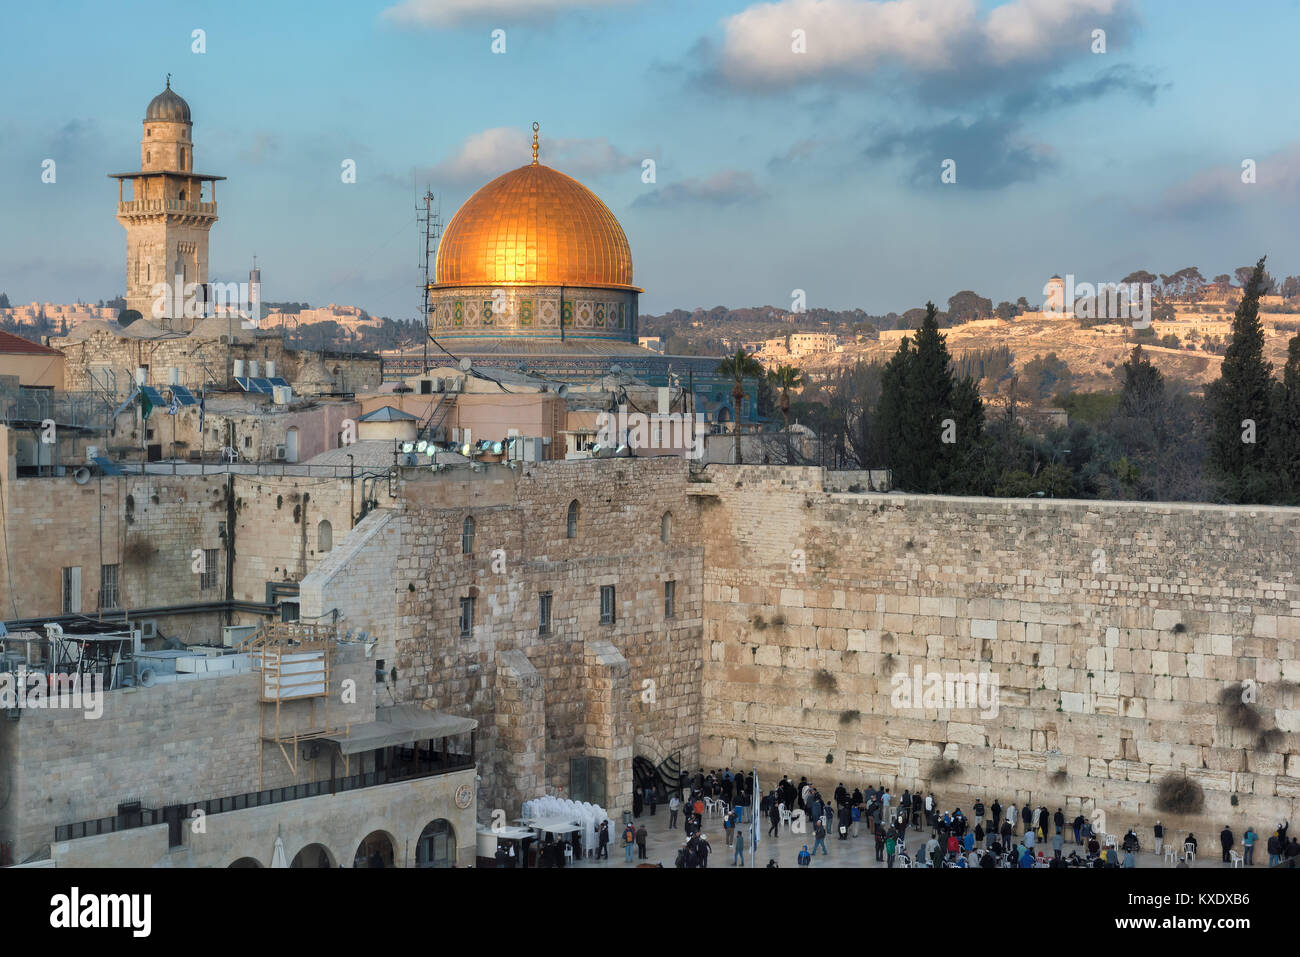 Western Wall and golden Dome of the Rock in Jerusalem Old City, Israel. - Stock Image